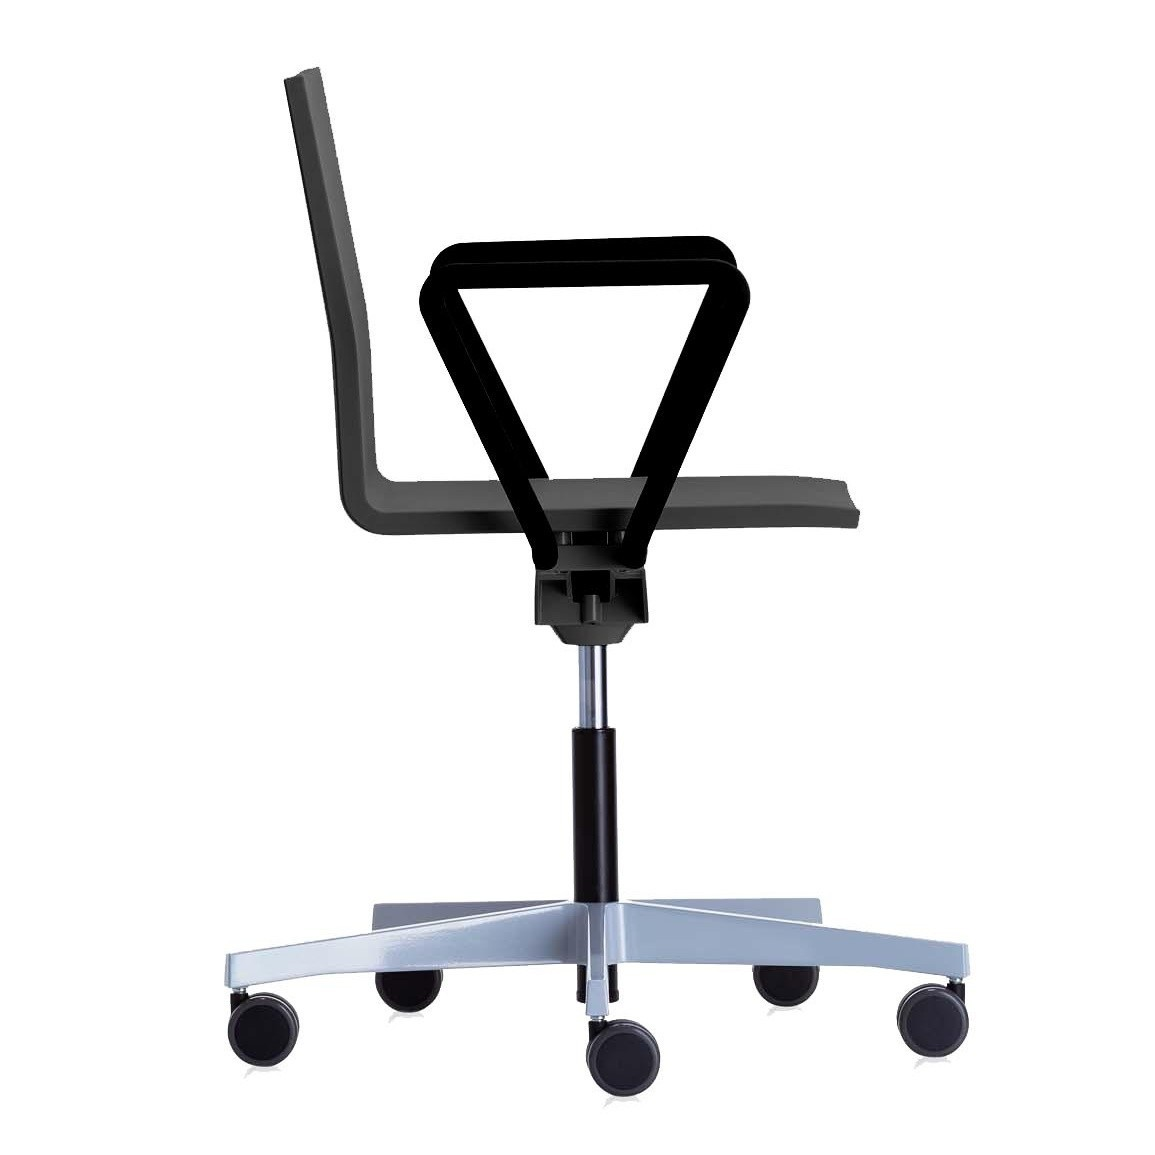 vitra 04 office chair ambientedirect rh ambientedirect com